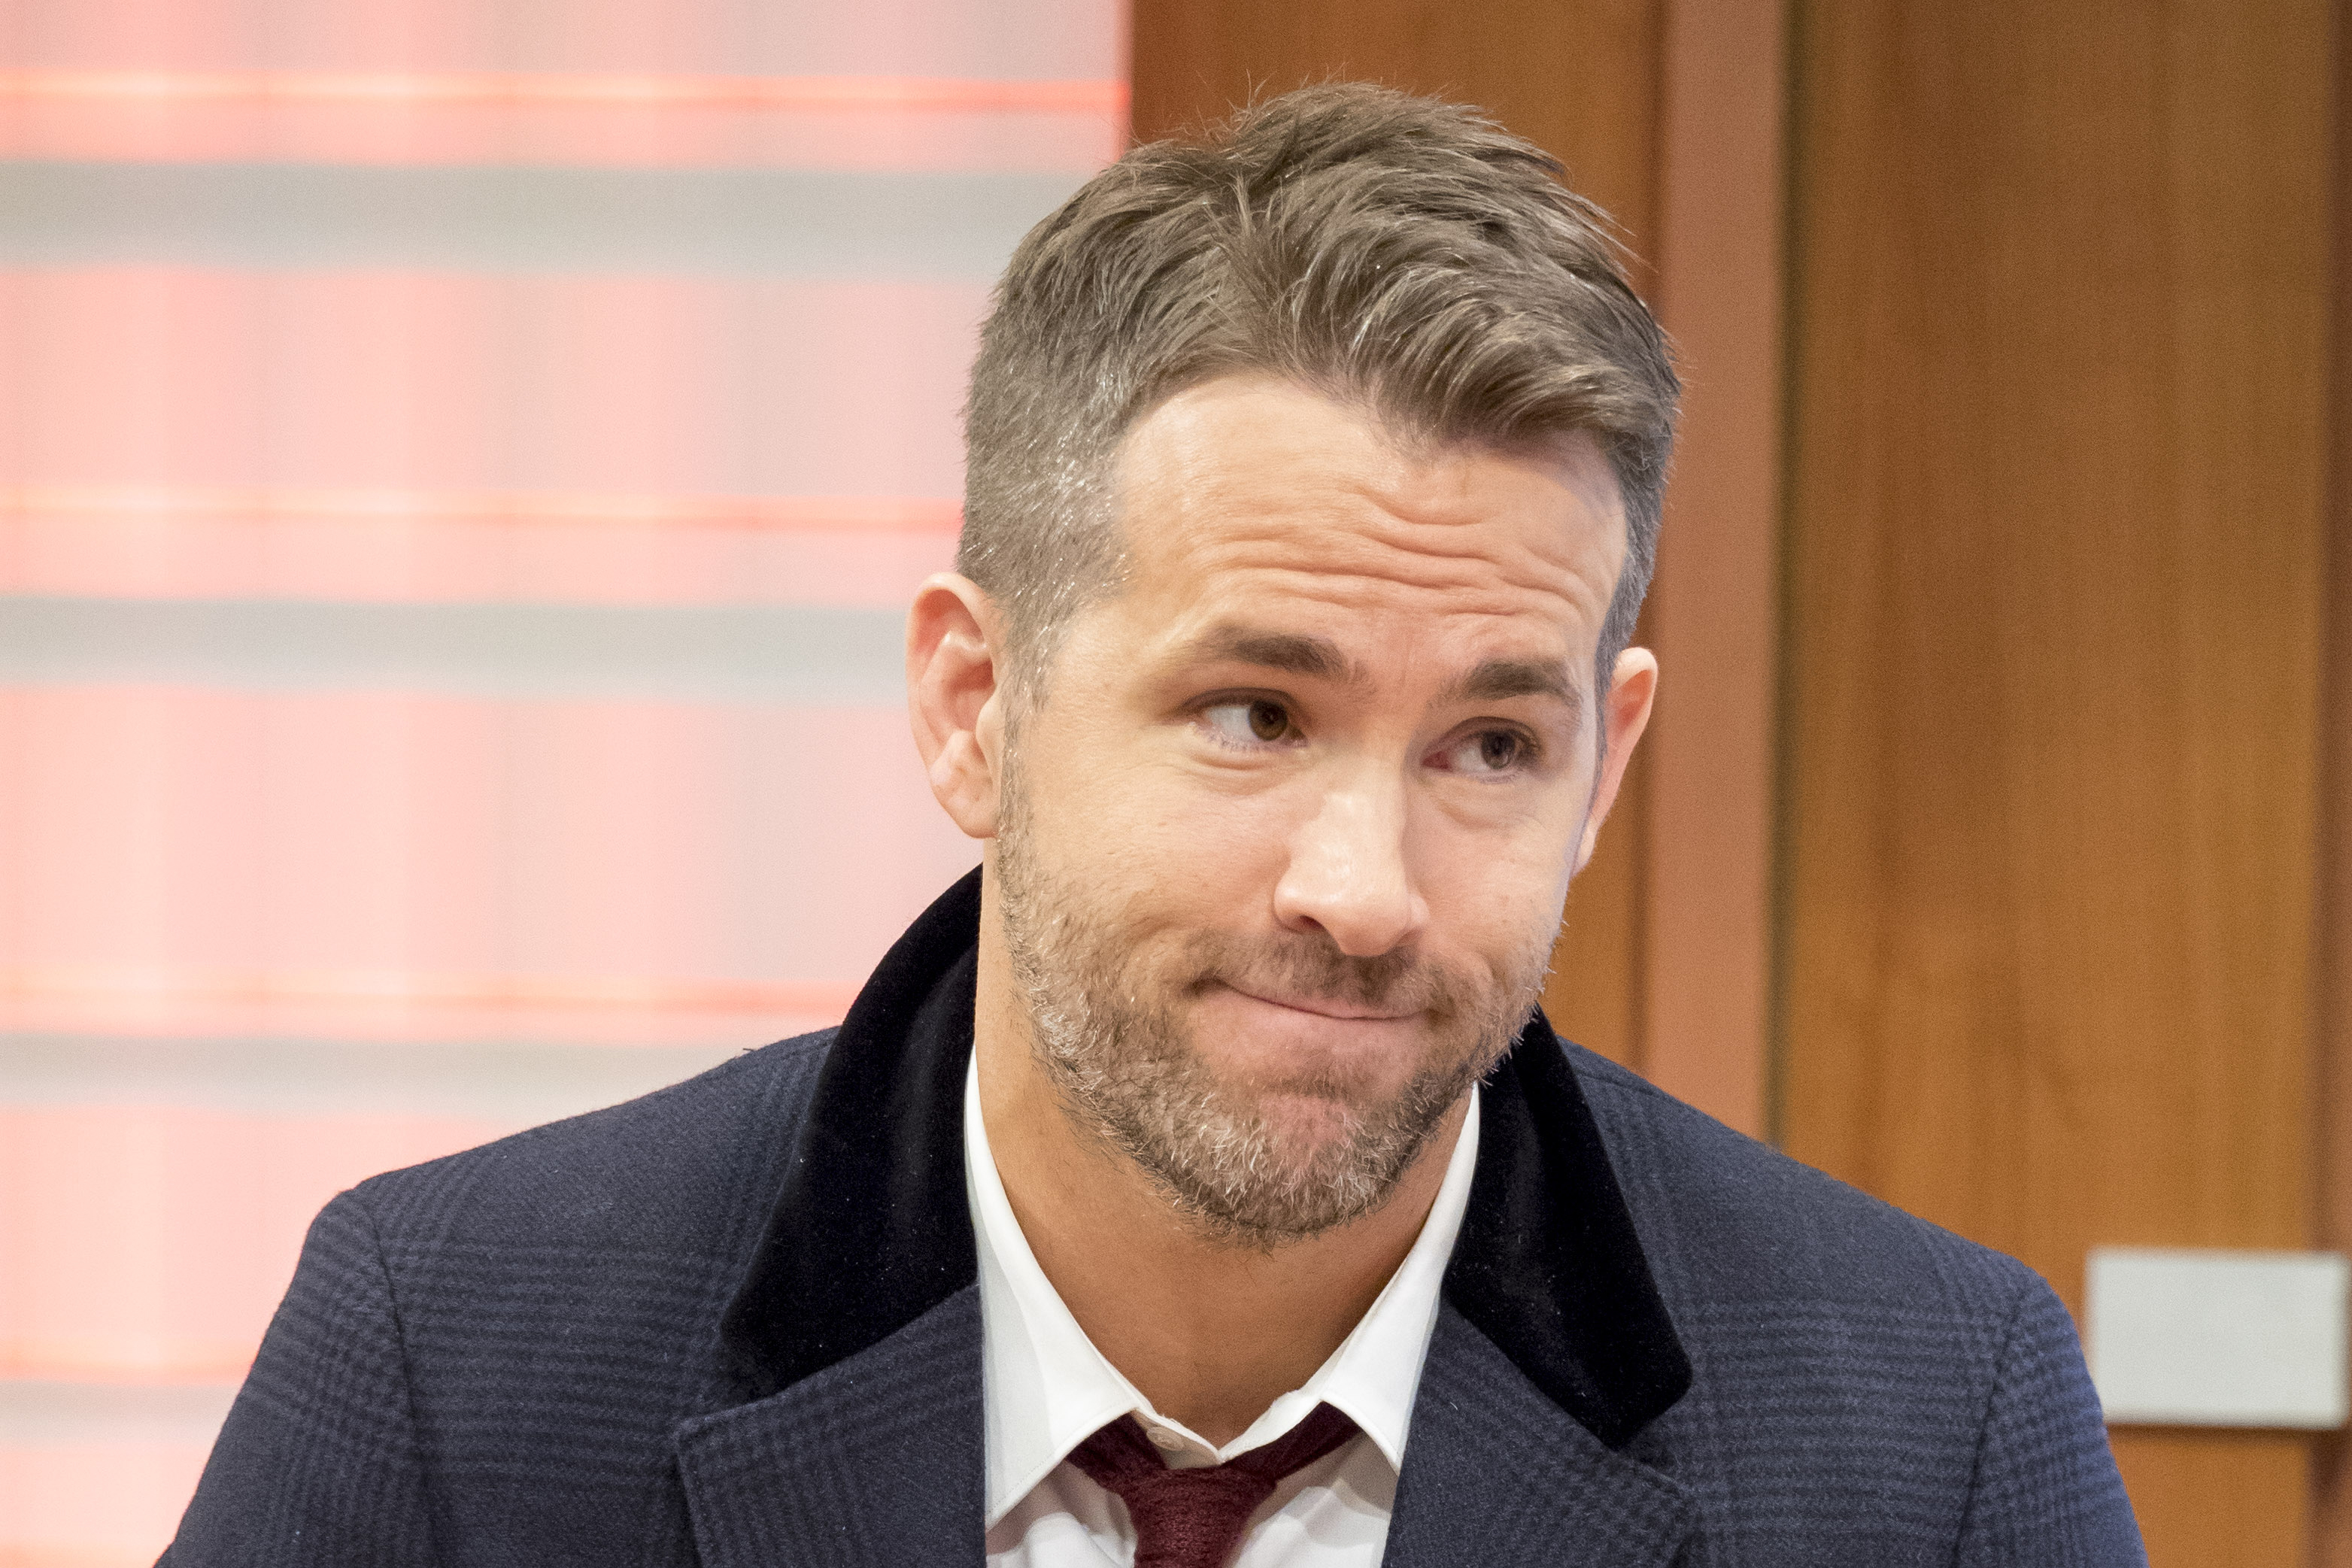 Ryan Reynolds Ethnicity, Race, and Nationality